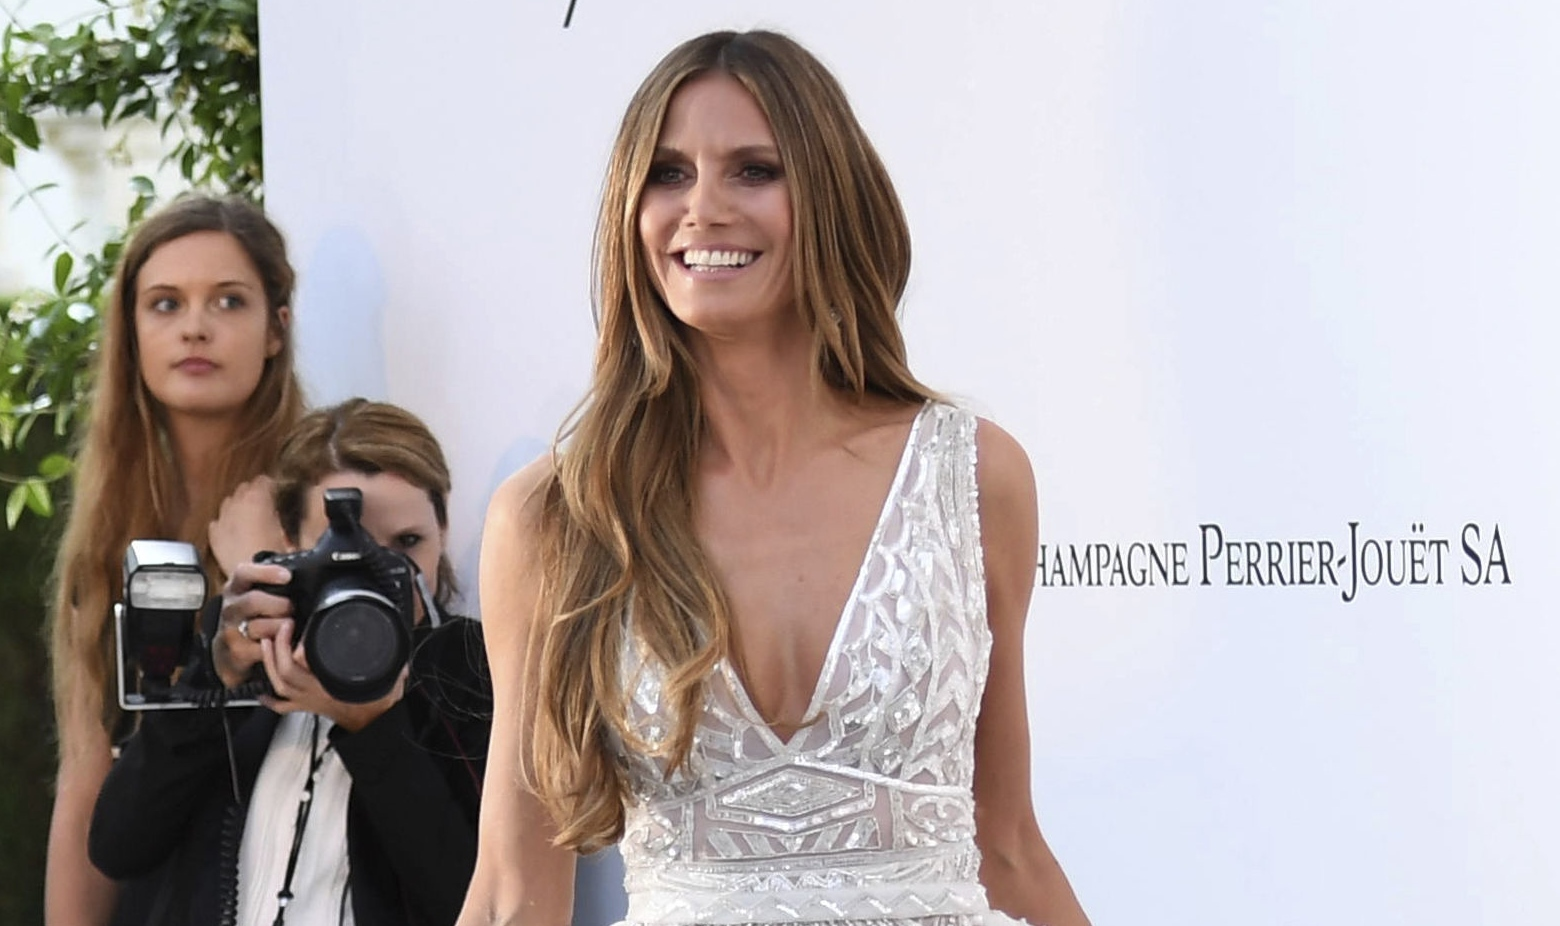 Model Heidi Klum poses for photographers upon arrival at the amfAR, Cinema Against AIDS, benefit at the Hotel du Cap-Eden-Roc, during the 71st international Cannes film festival, in Cap d'Antibes, southern France, Thursday, May 17, 2018. (Photo by Art